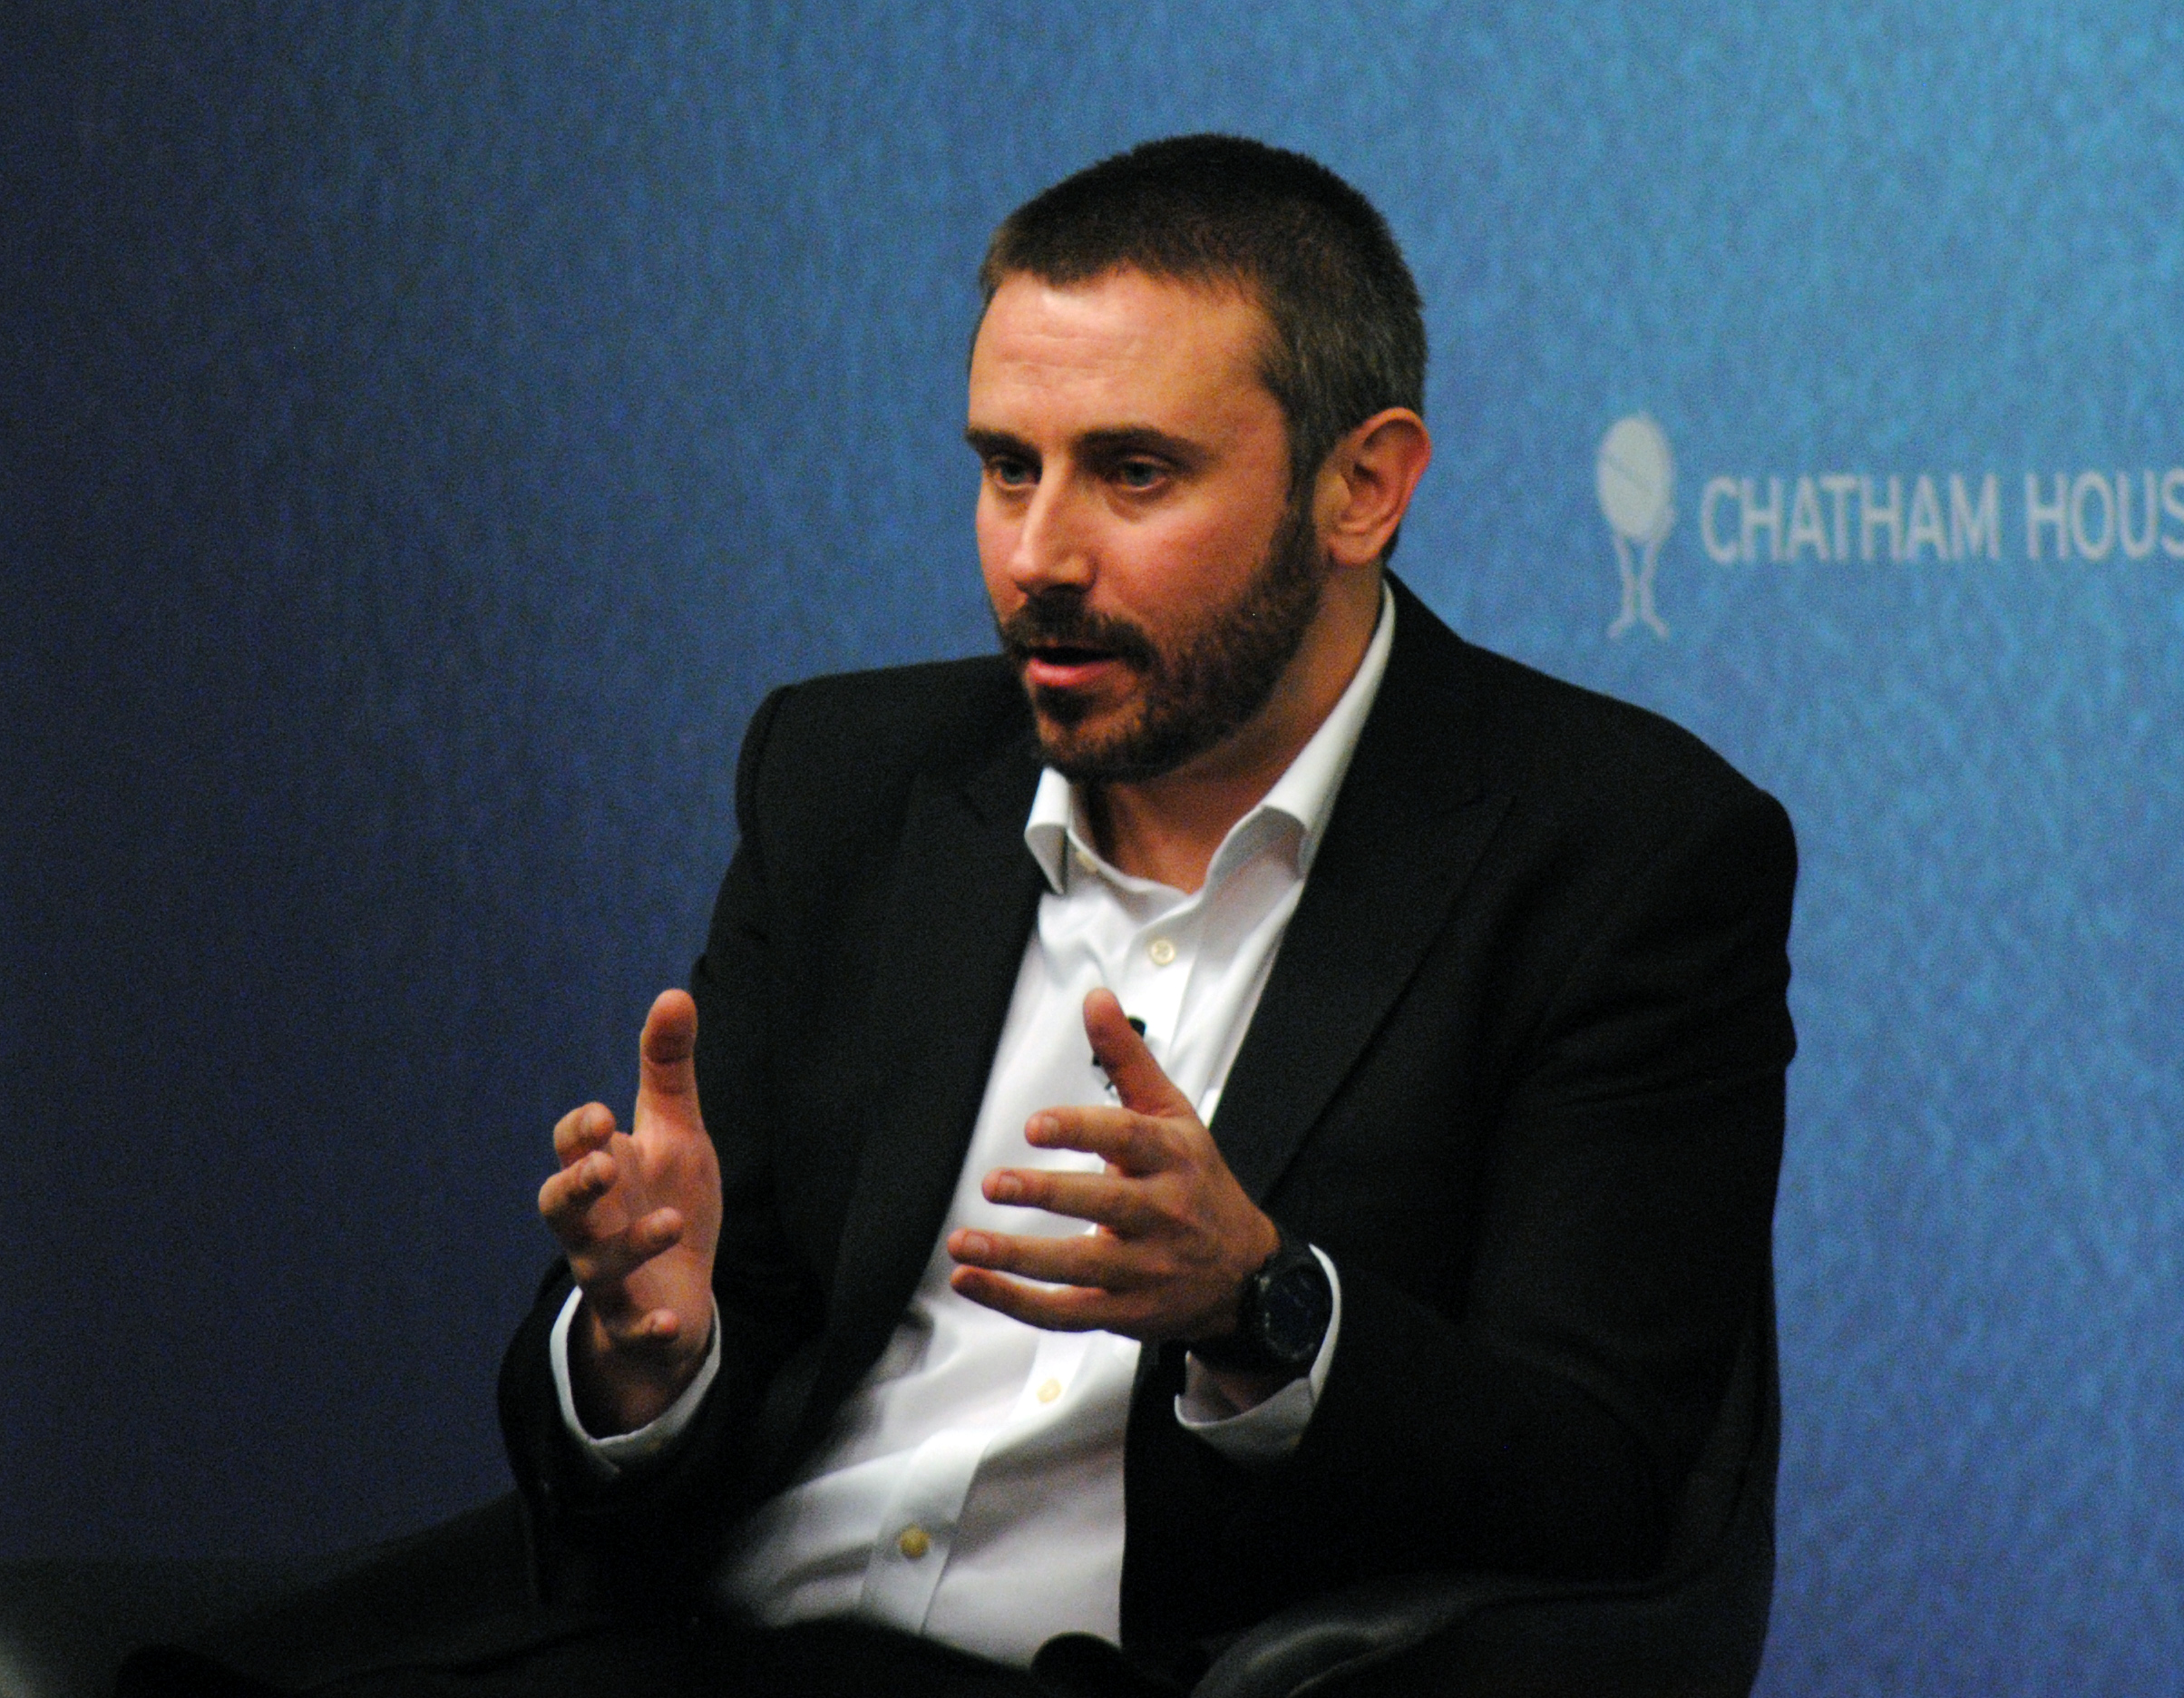 "Jeremy Scahill, National Security Correspondent, The Nation; Author, Dirty Wars at the Chatham House event ""Targeted Killings and Drones: A Global Battlefield"", 28 November 2013"